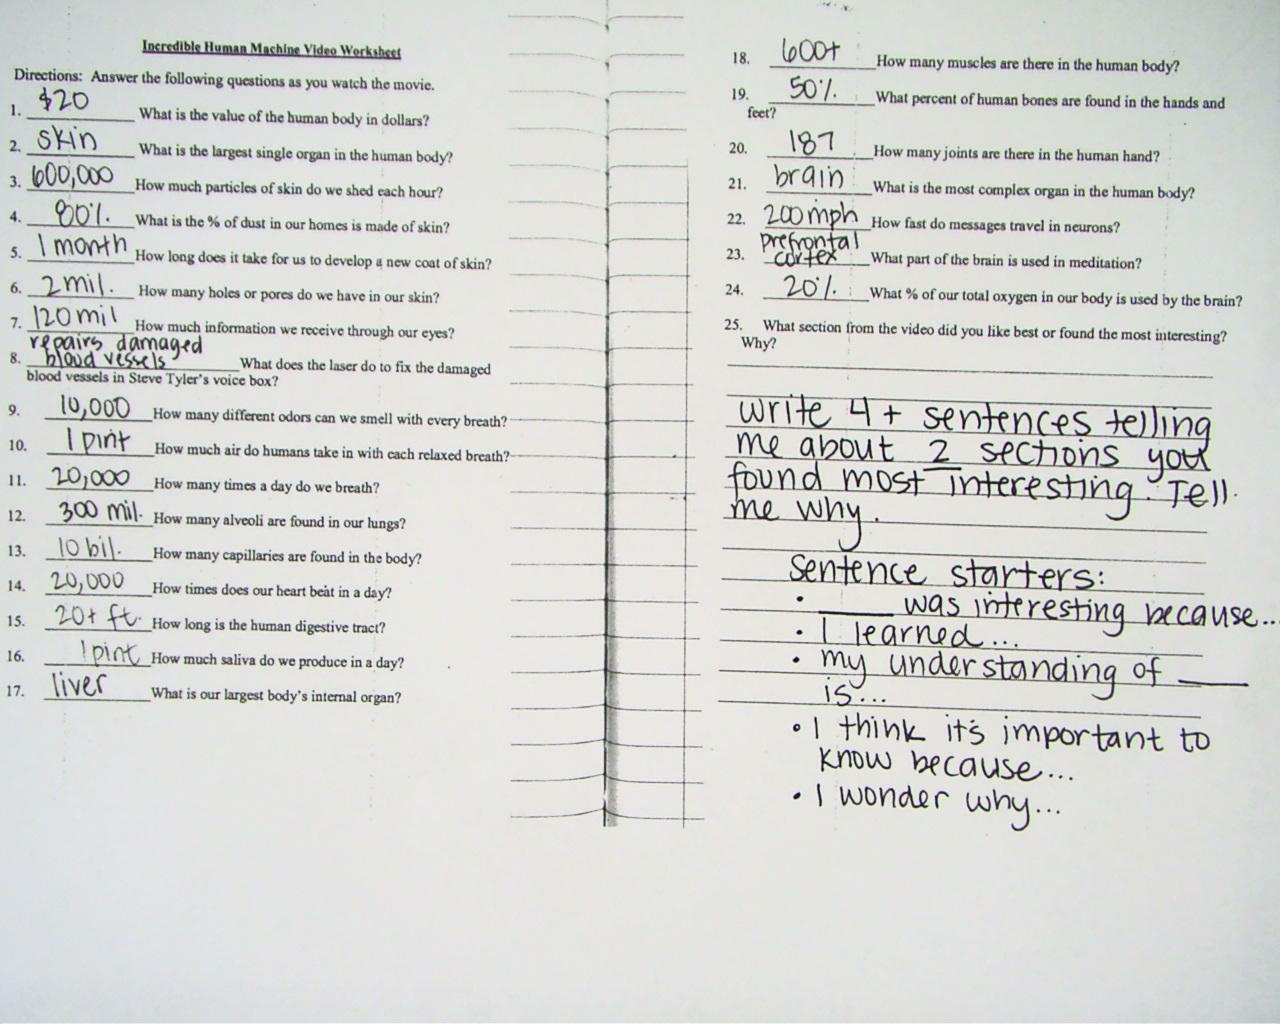 The Incredible Human Machine Worksheets Answers